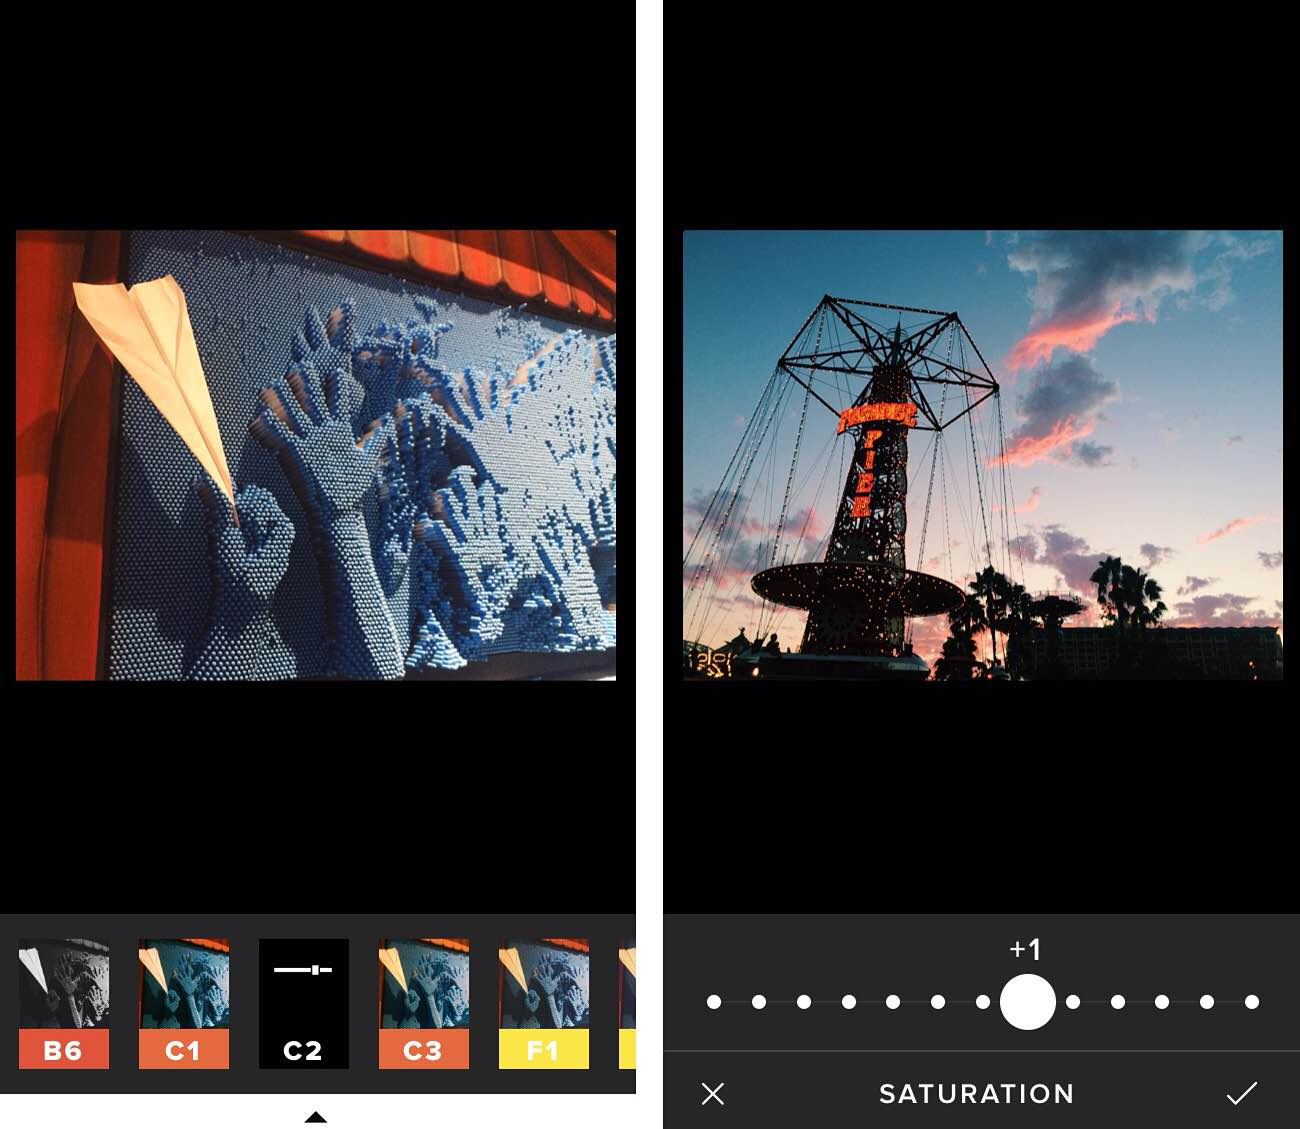 VSCO Cam for iOS is our favorite photo editing app.